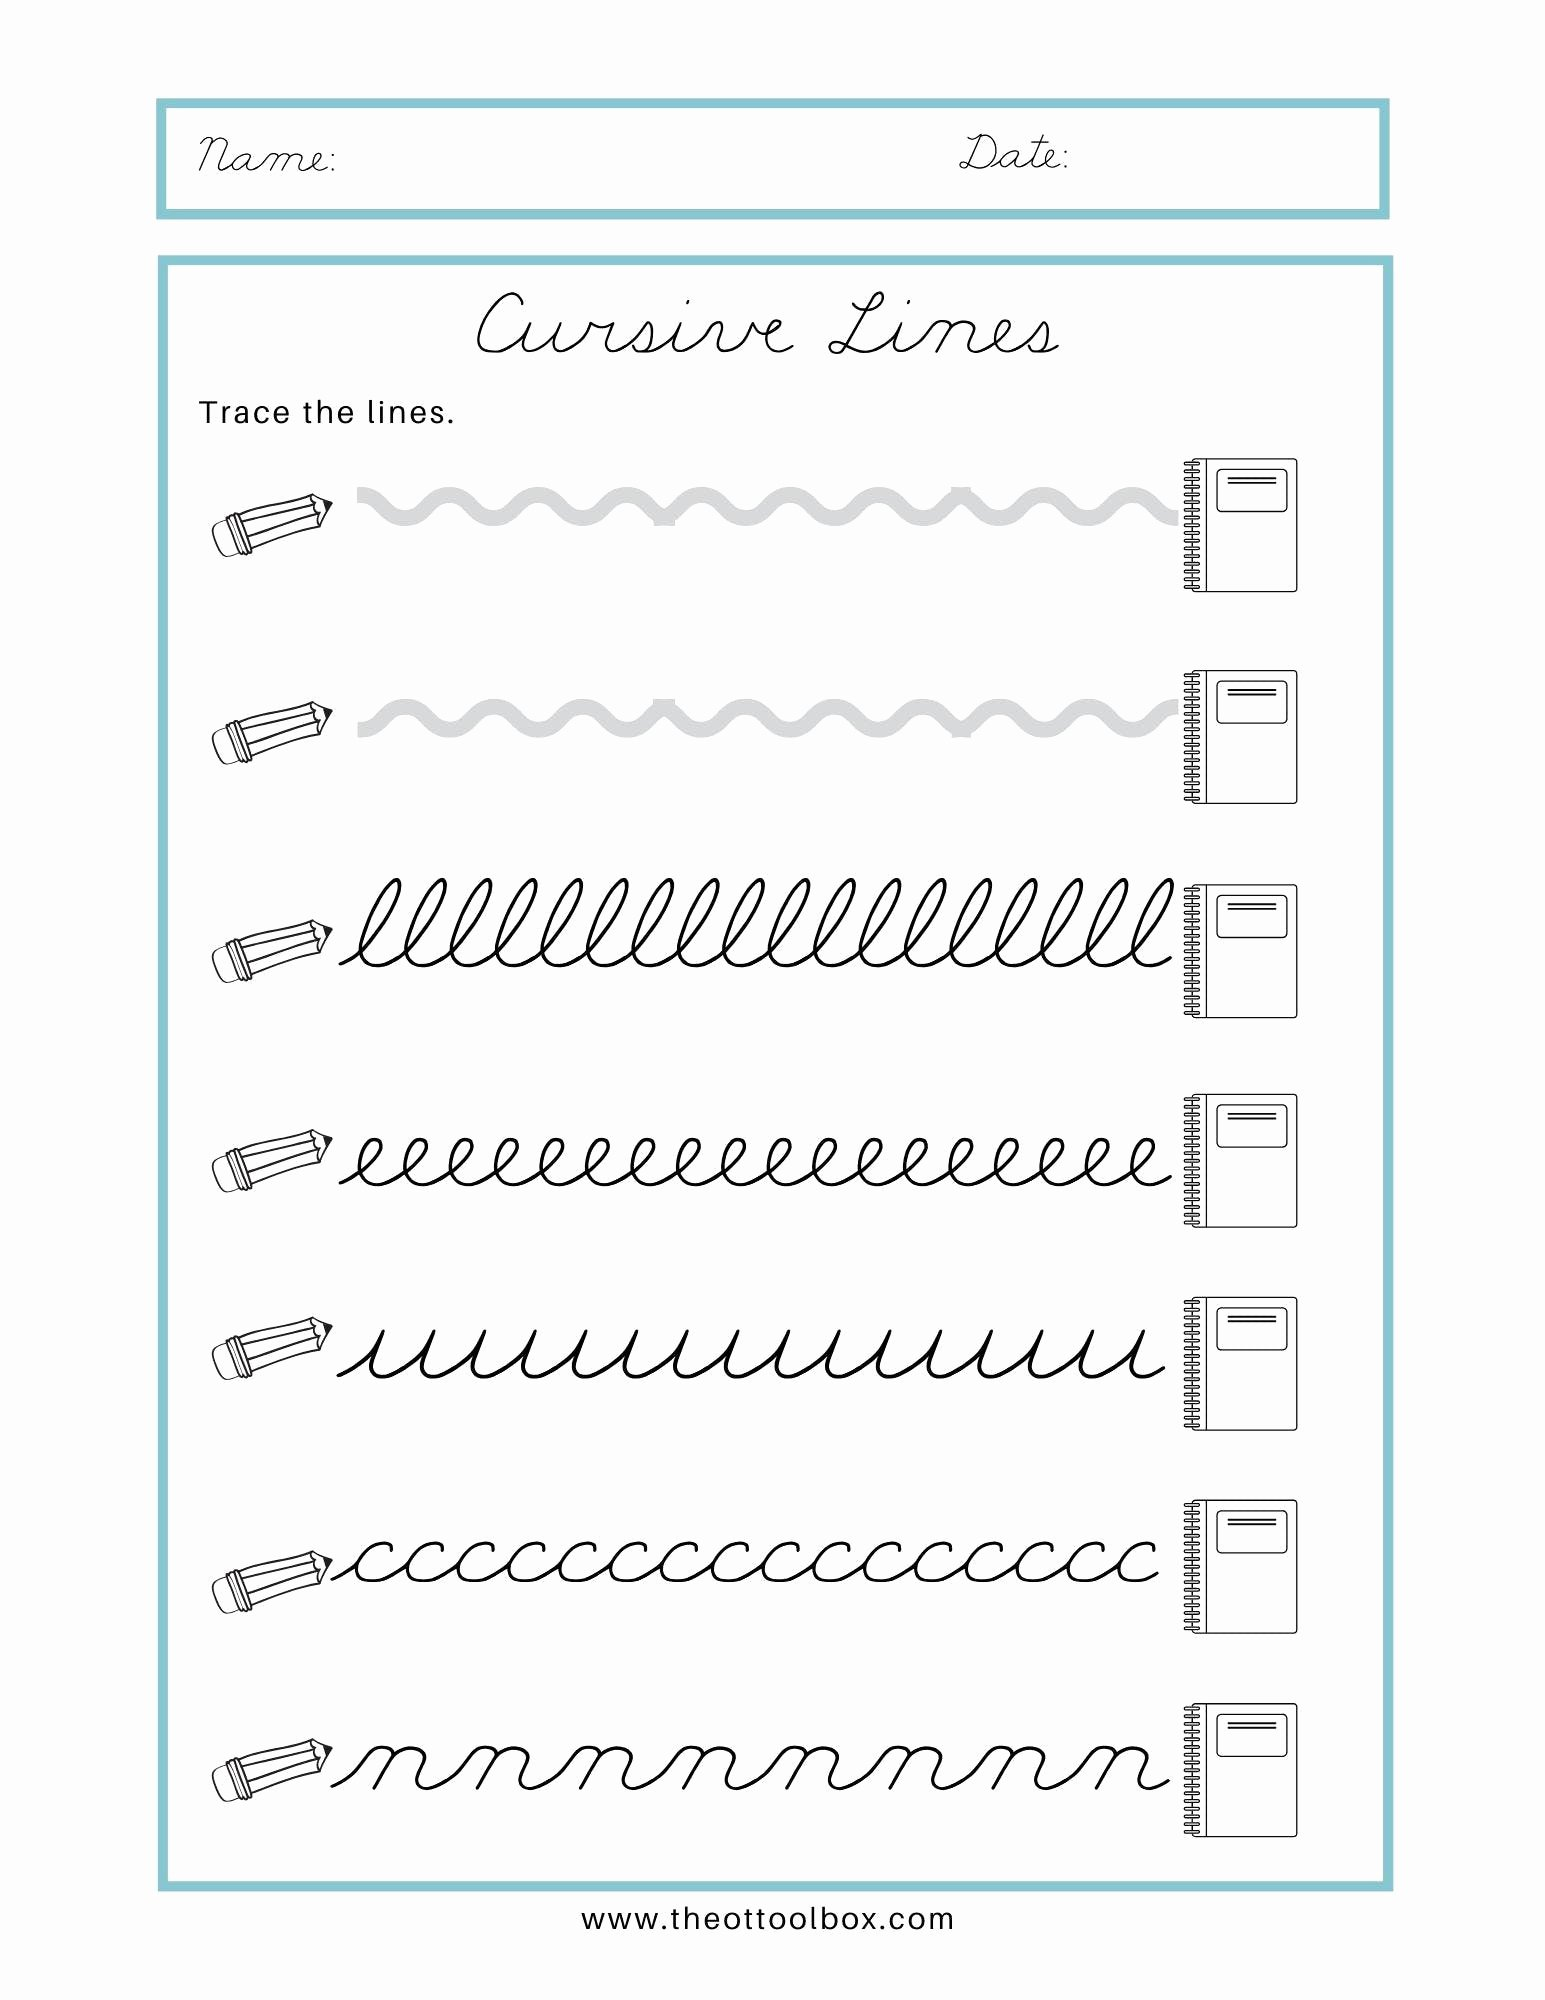 Strokes Worksheets for Preschoolers Beautiful Math Worksheet Free Cursive Name Tracingorksheets